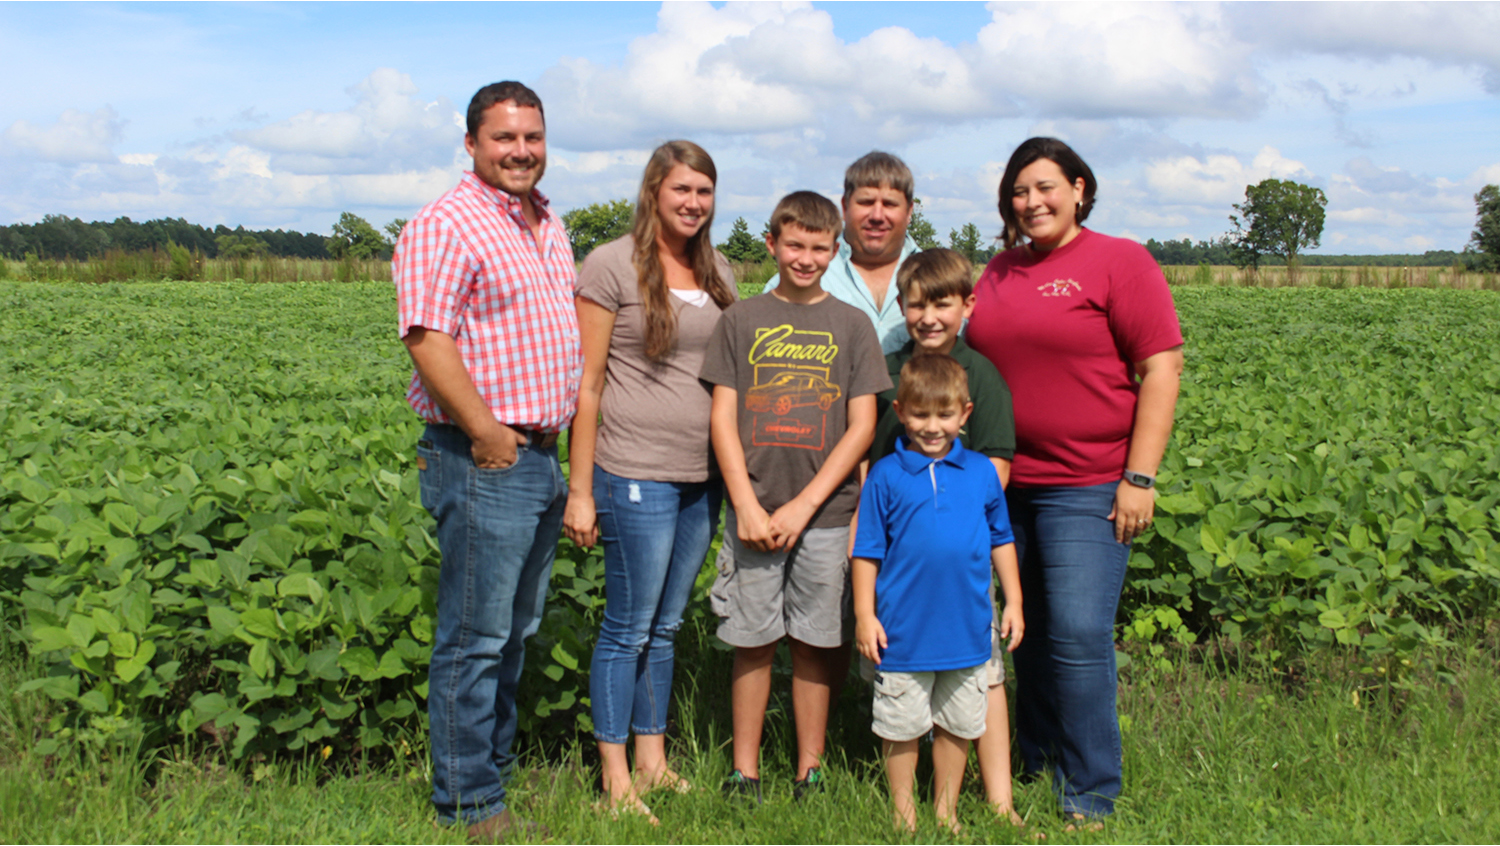 Four adults and three children gathered together near a farm field.